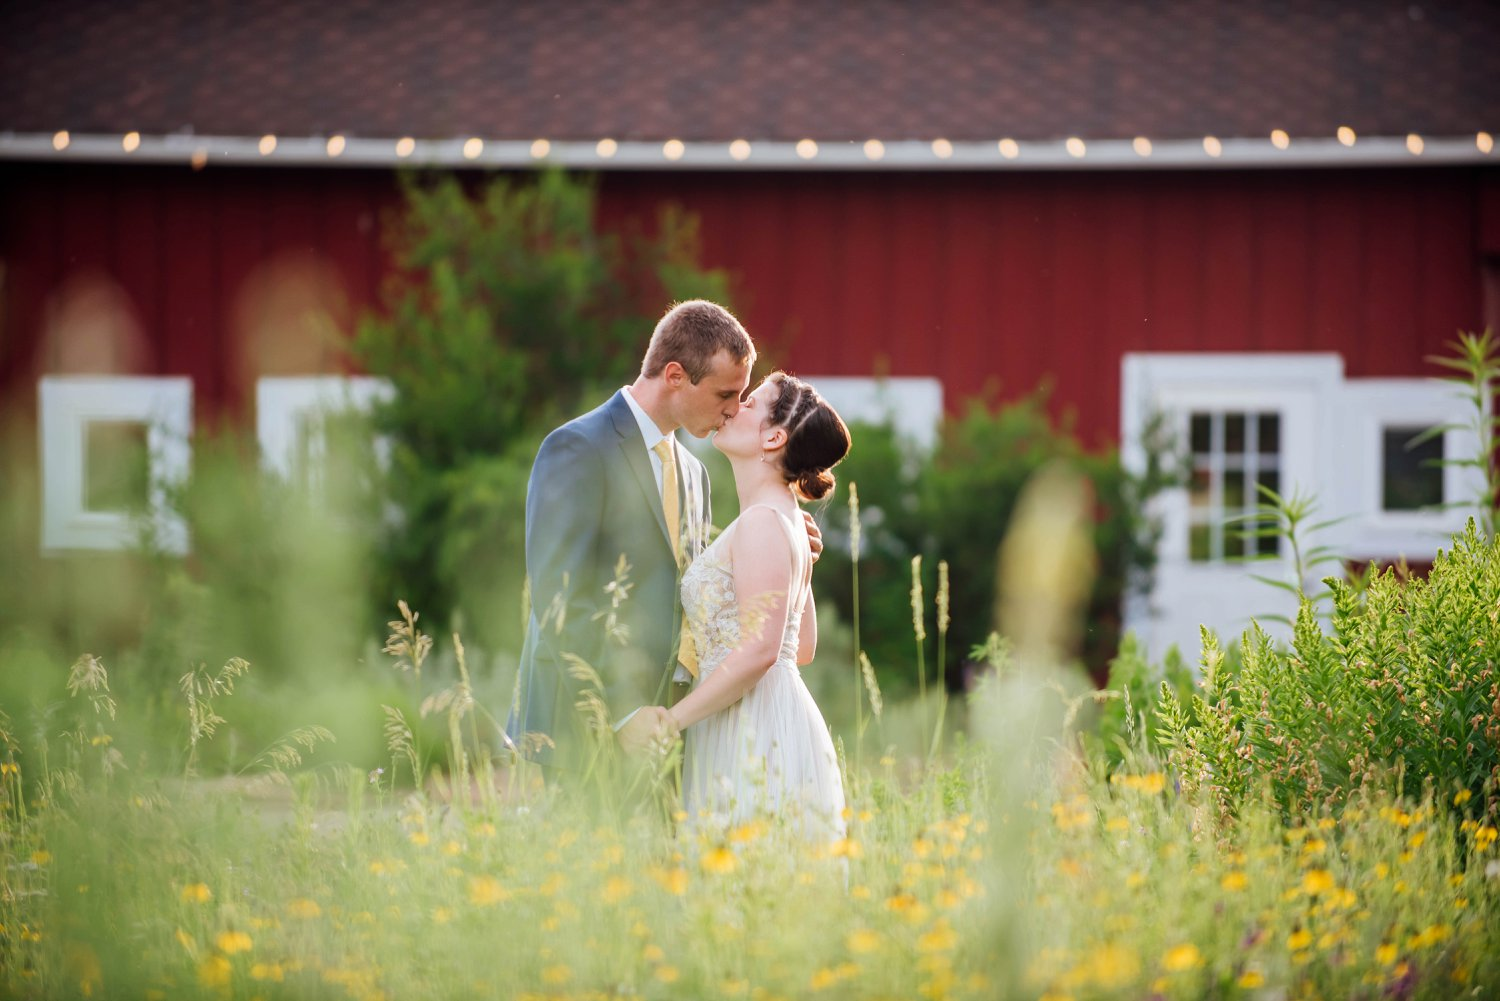 The red barn at the Chatfield farm at the Denver Botanic Garden is a great backdrop for some beautiful wedding photos.Photo by Maddie Mae Photography